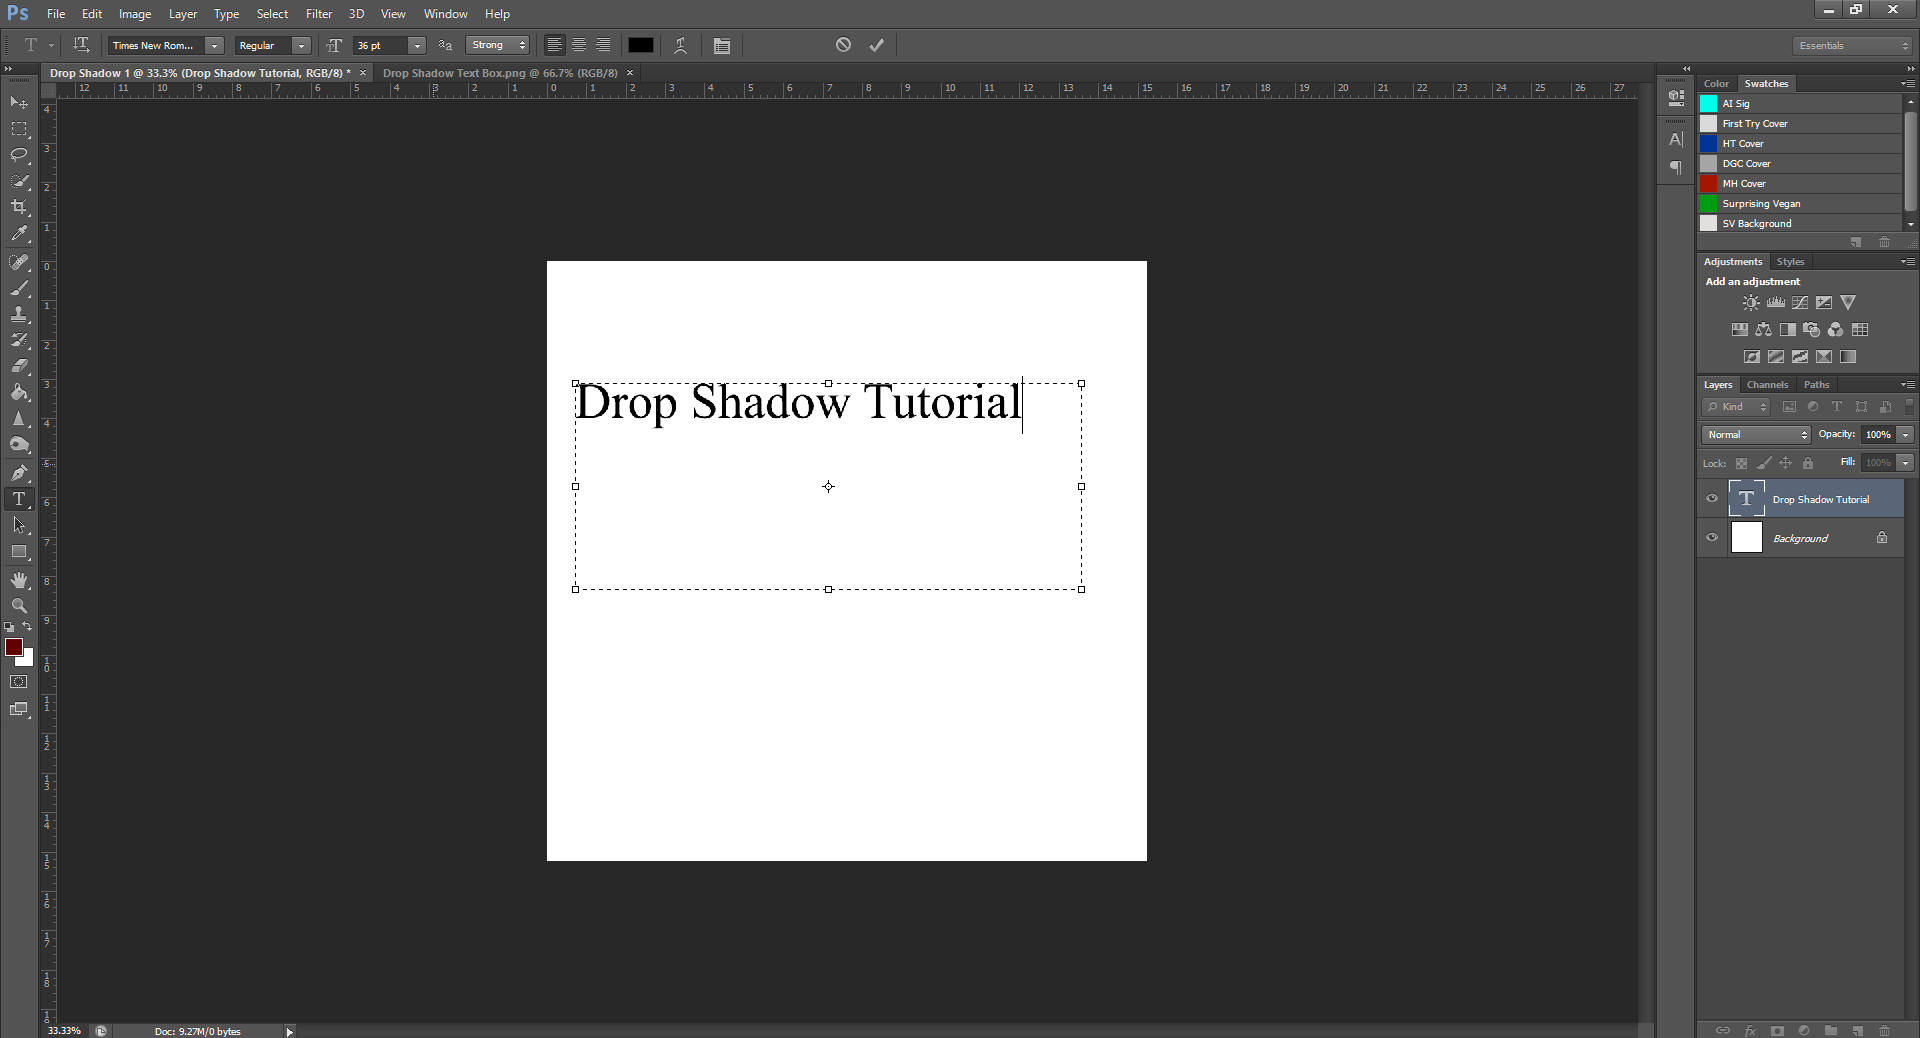 AterImber.com - Writing - Writing Tips - PHSH Tutorial - Drop Shadow - Text Box w Words